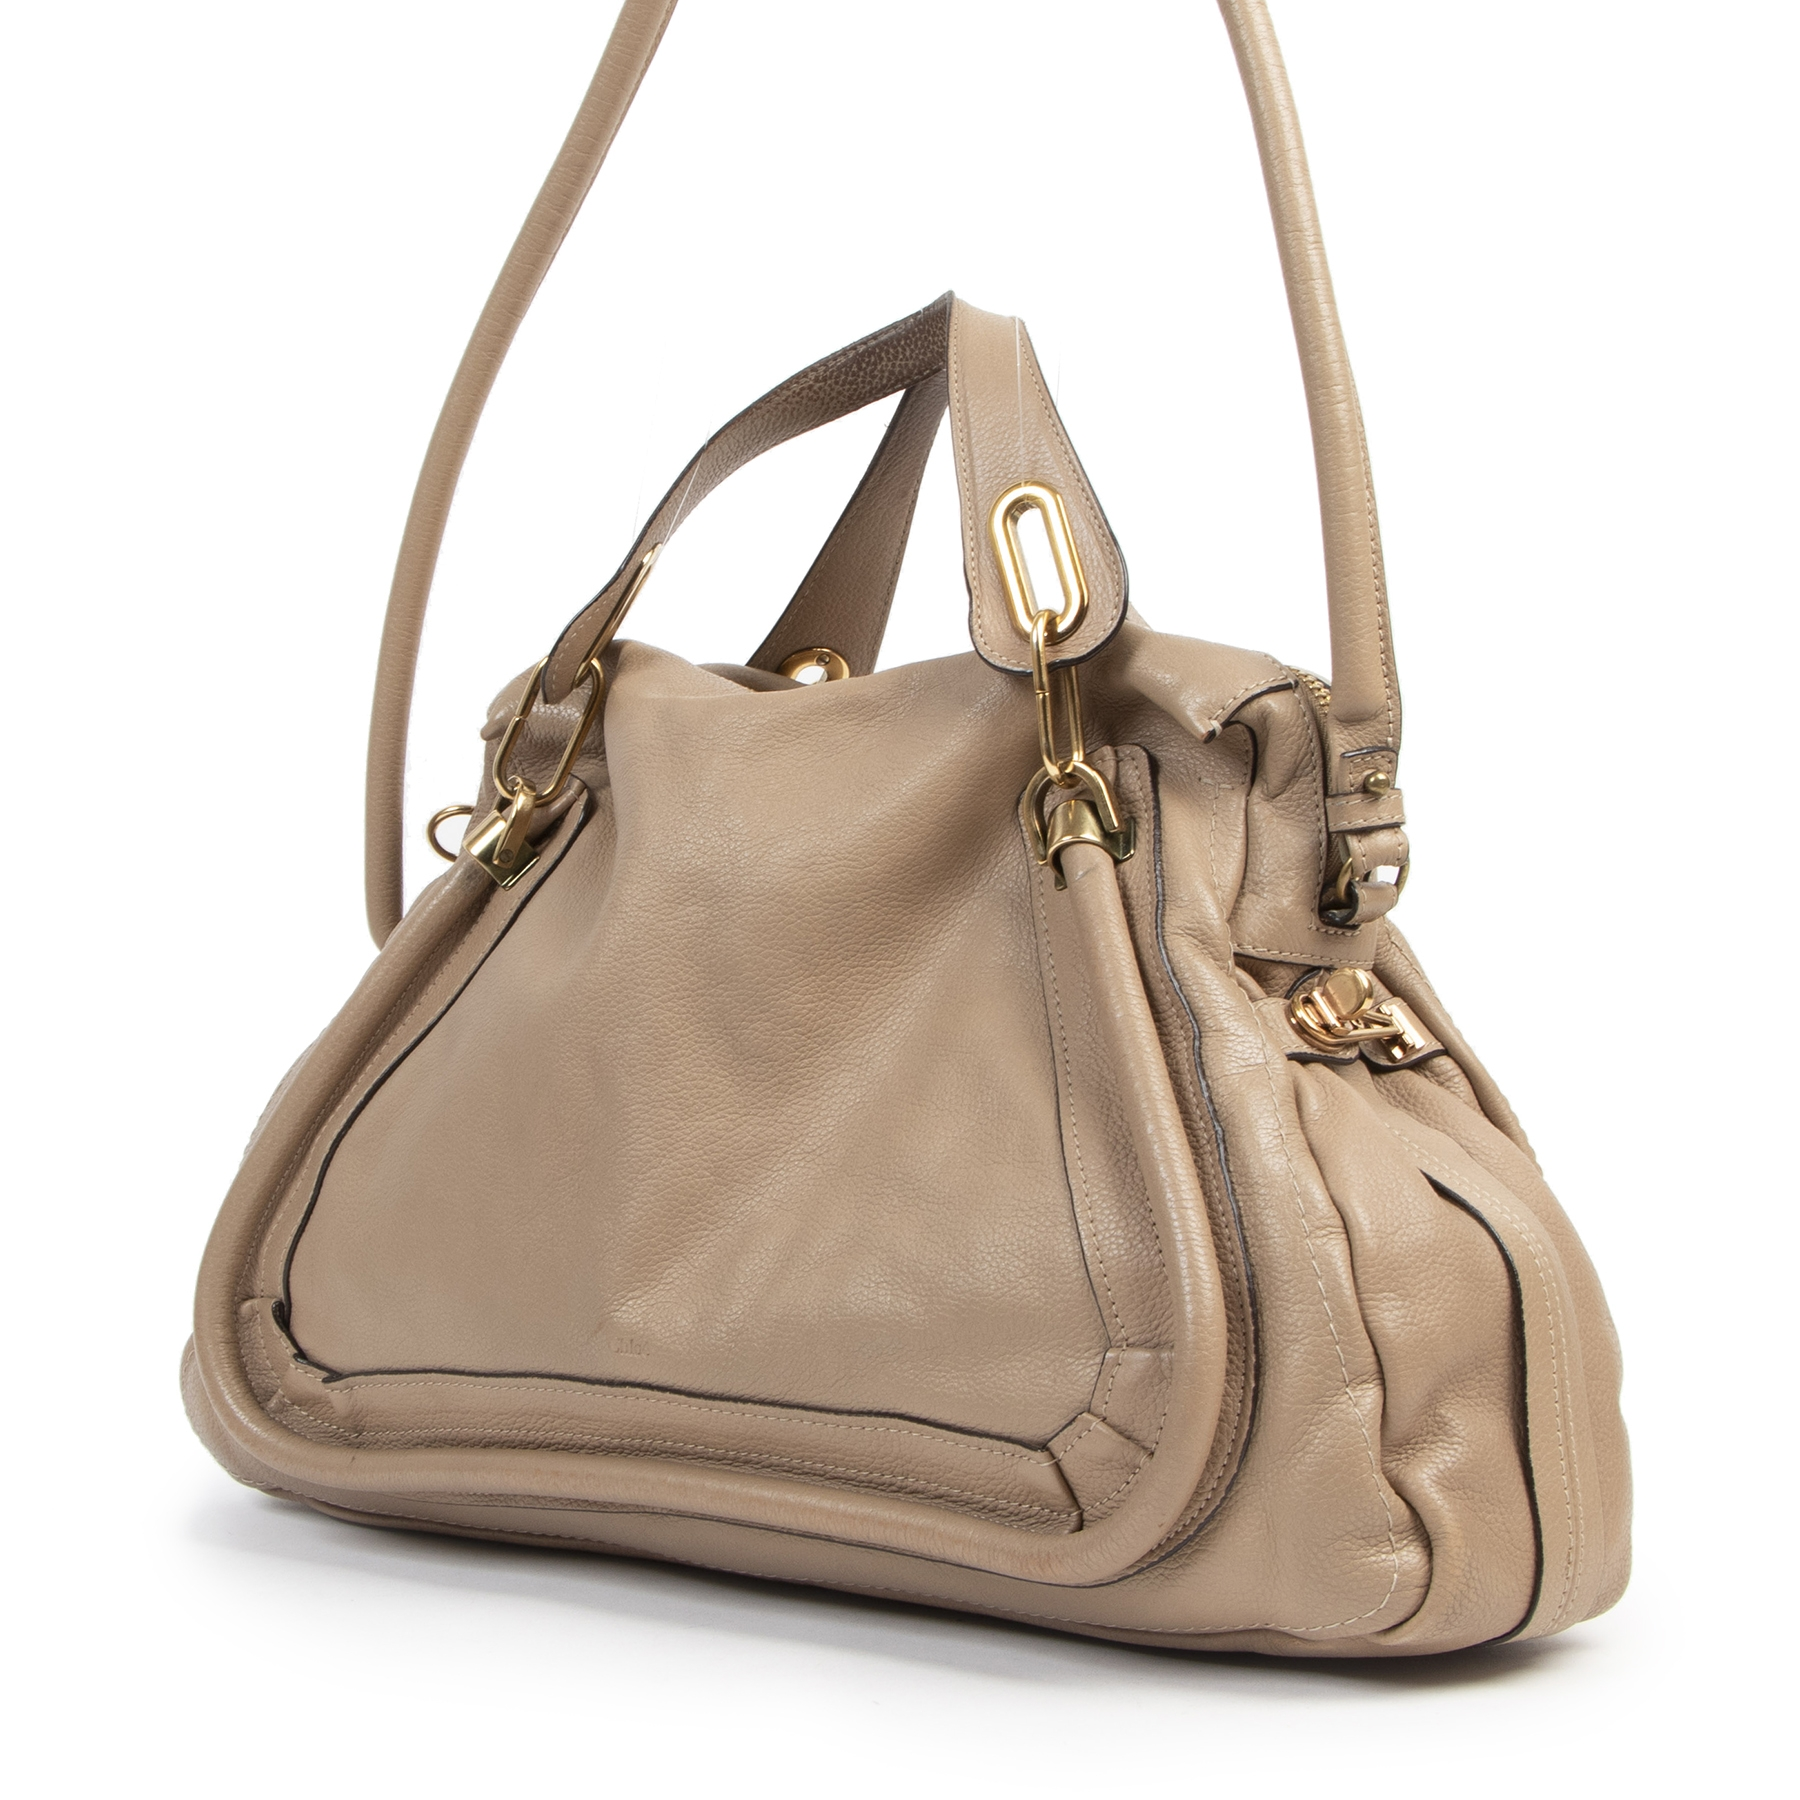 Buy and sell your authentic preloved Chloé Taupe Leather Paraty Bag